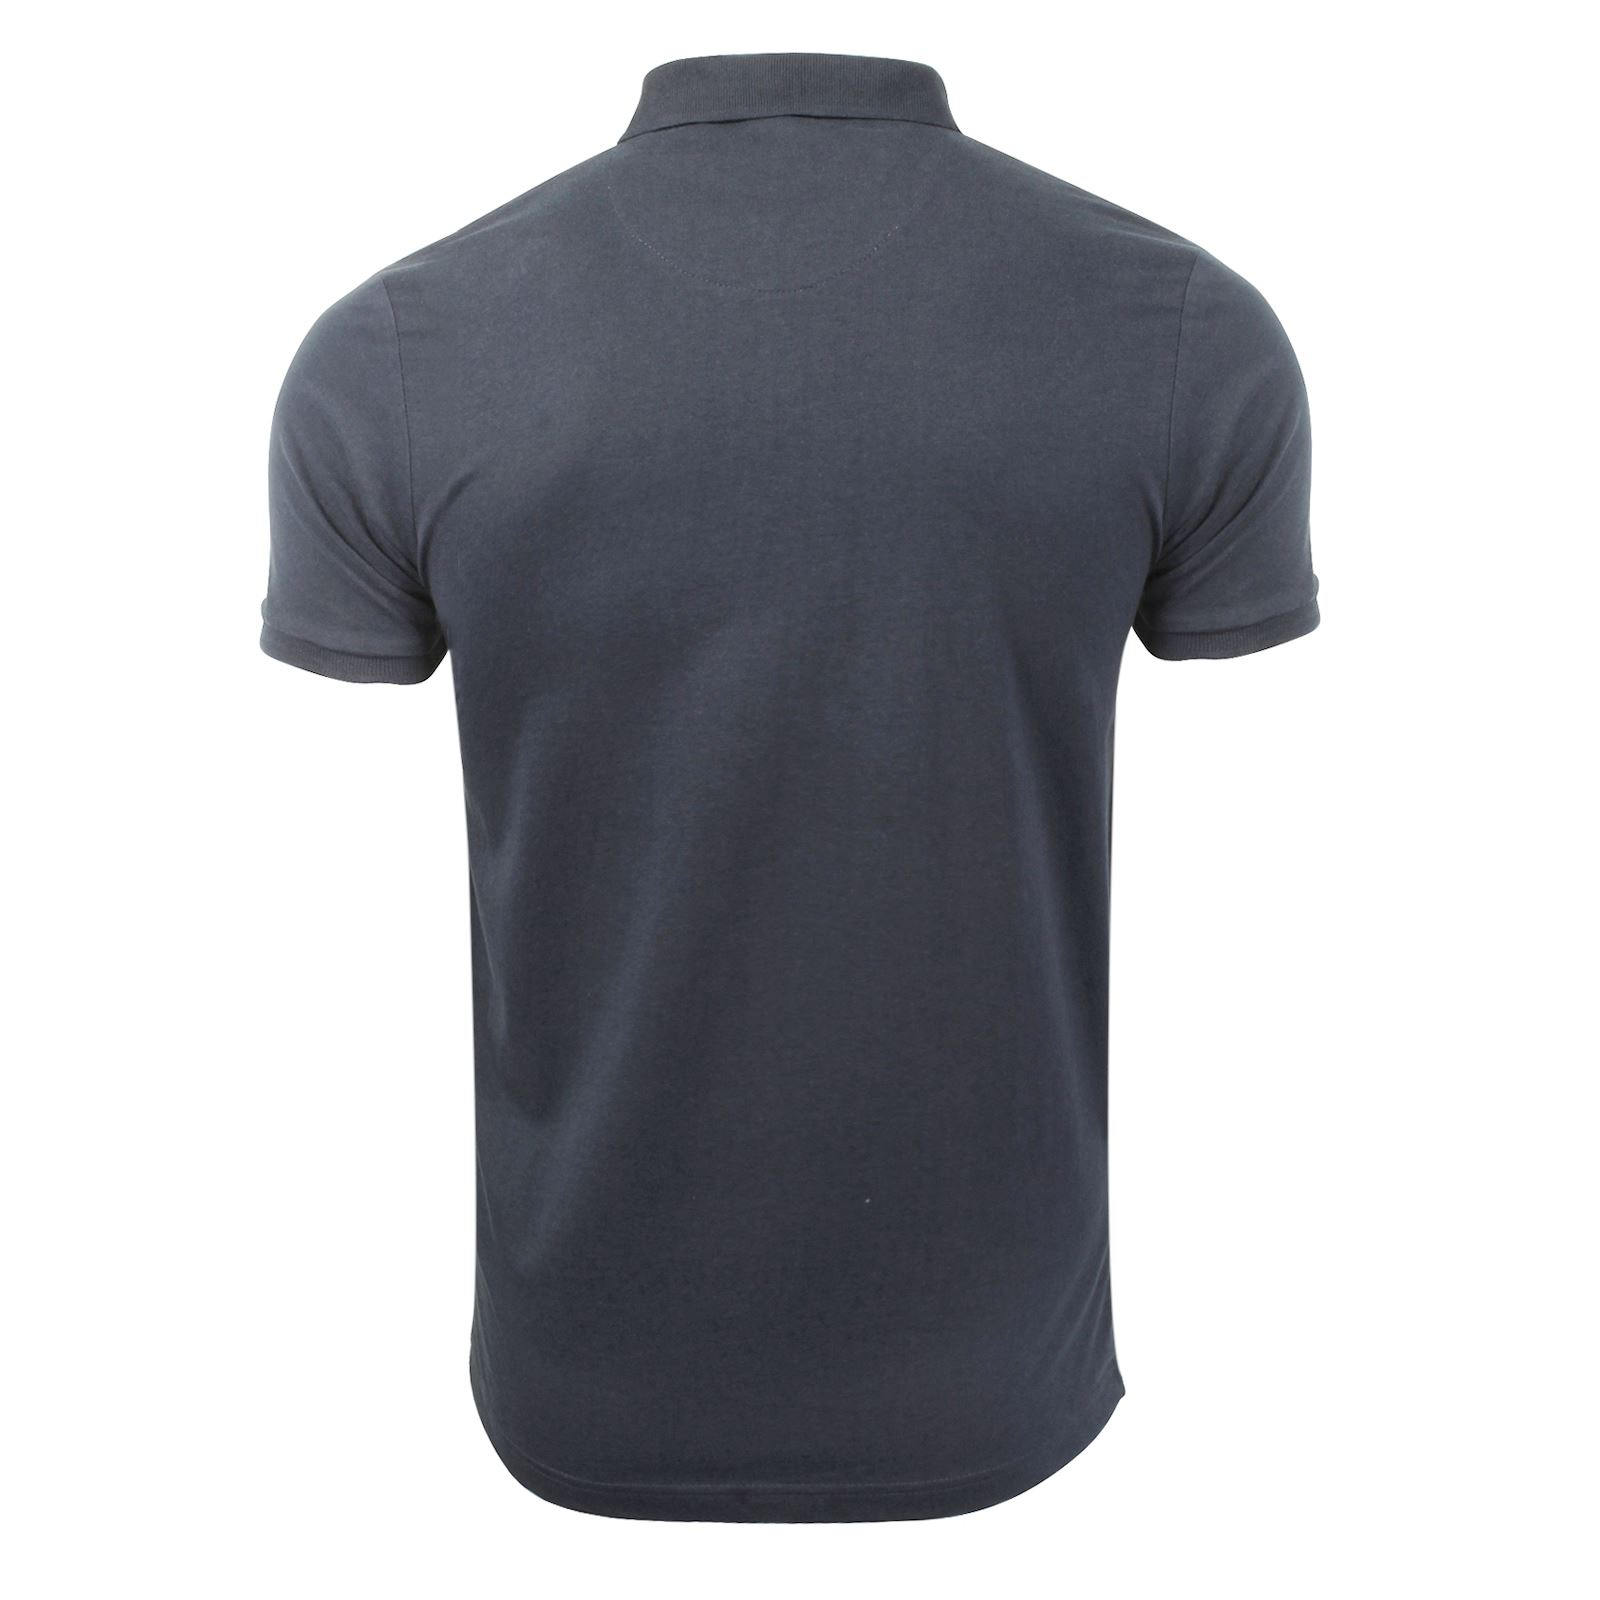 Mens-Polo-T-Shirt-Brave-Soul-Chimera-Chambray-Collared-Cotton-Casual-Top thumbnail 65